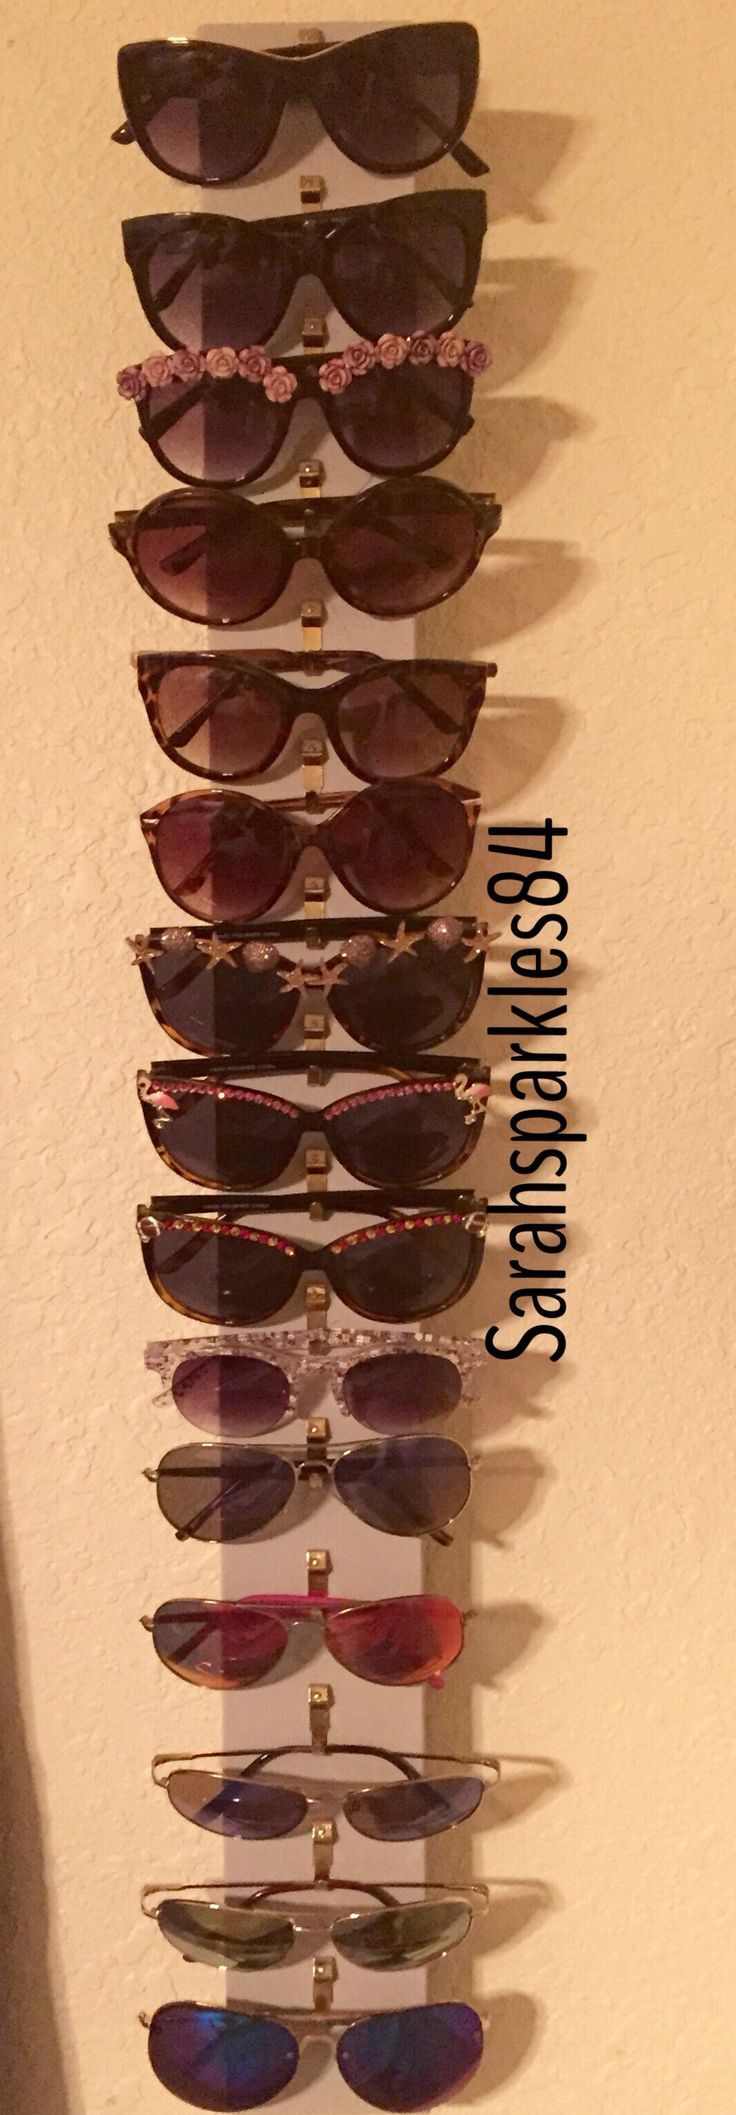 41 best Sunglass Display and Storage Ideas images on ...